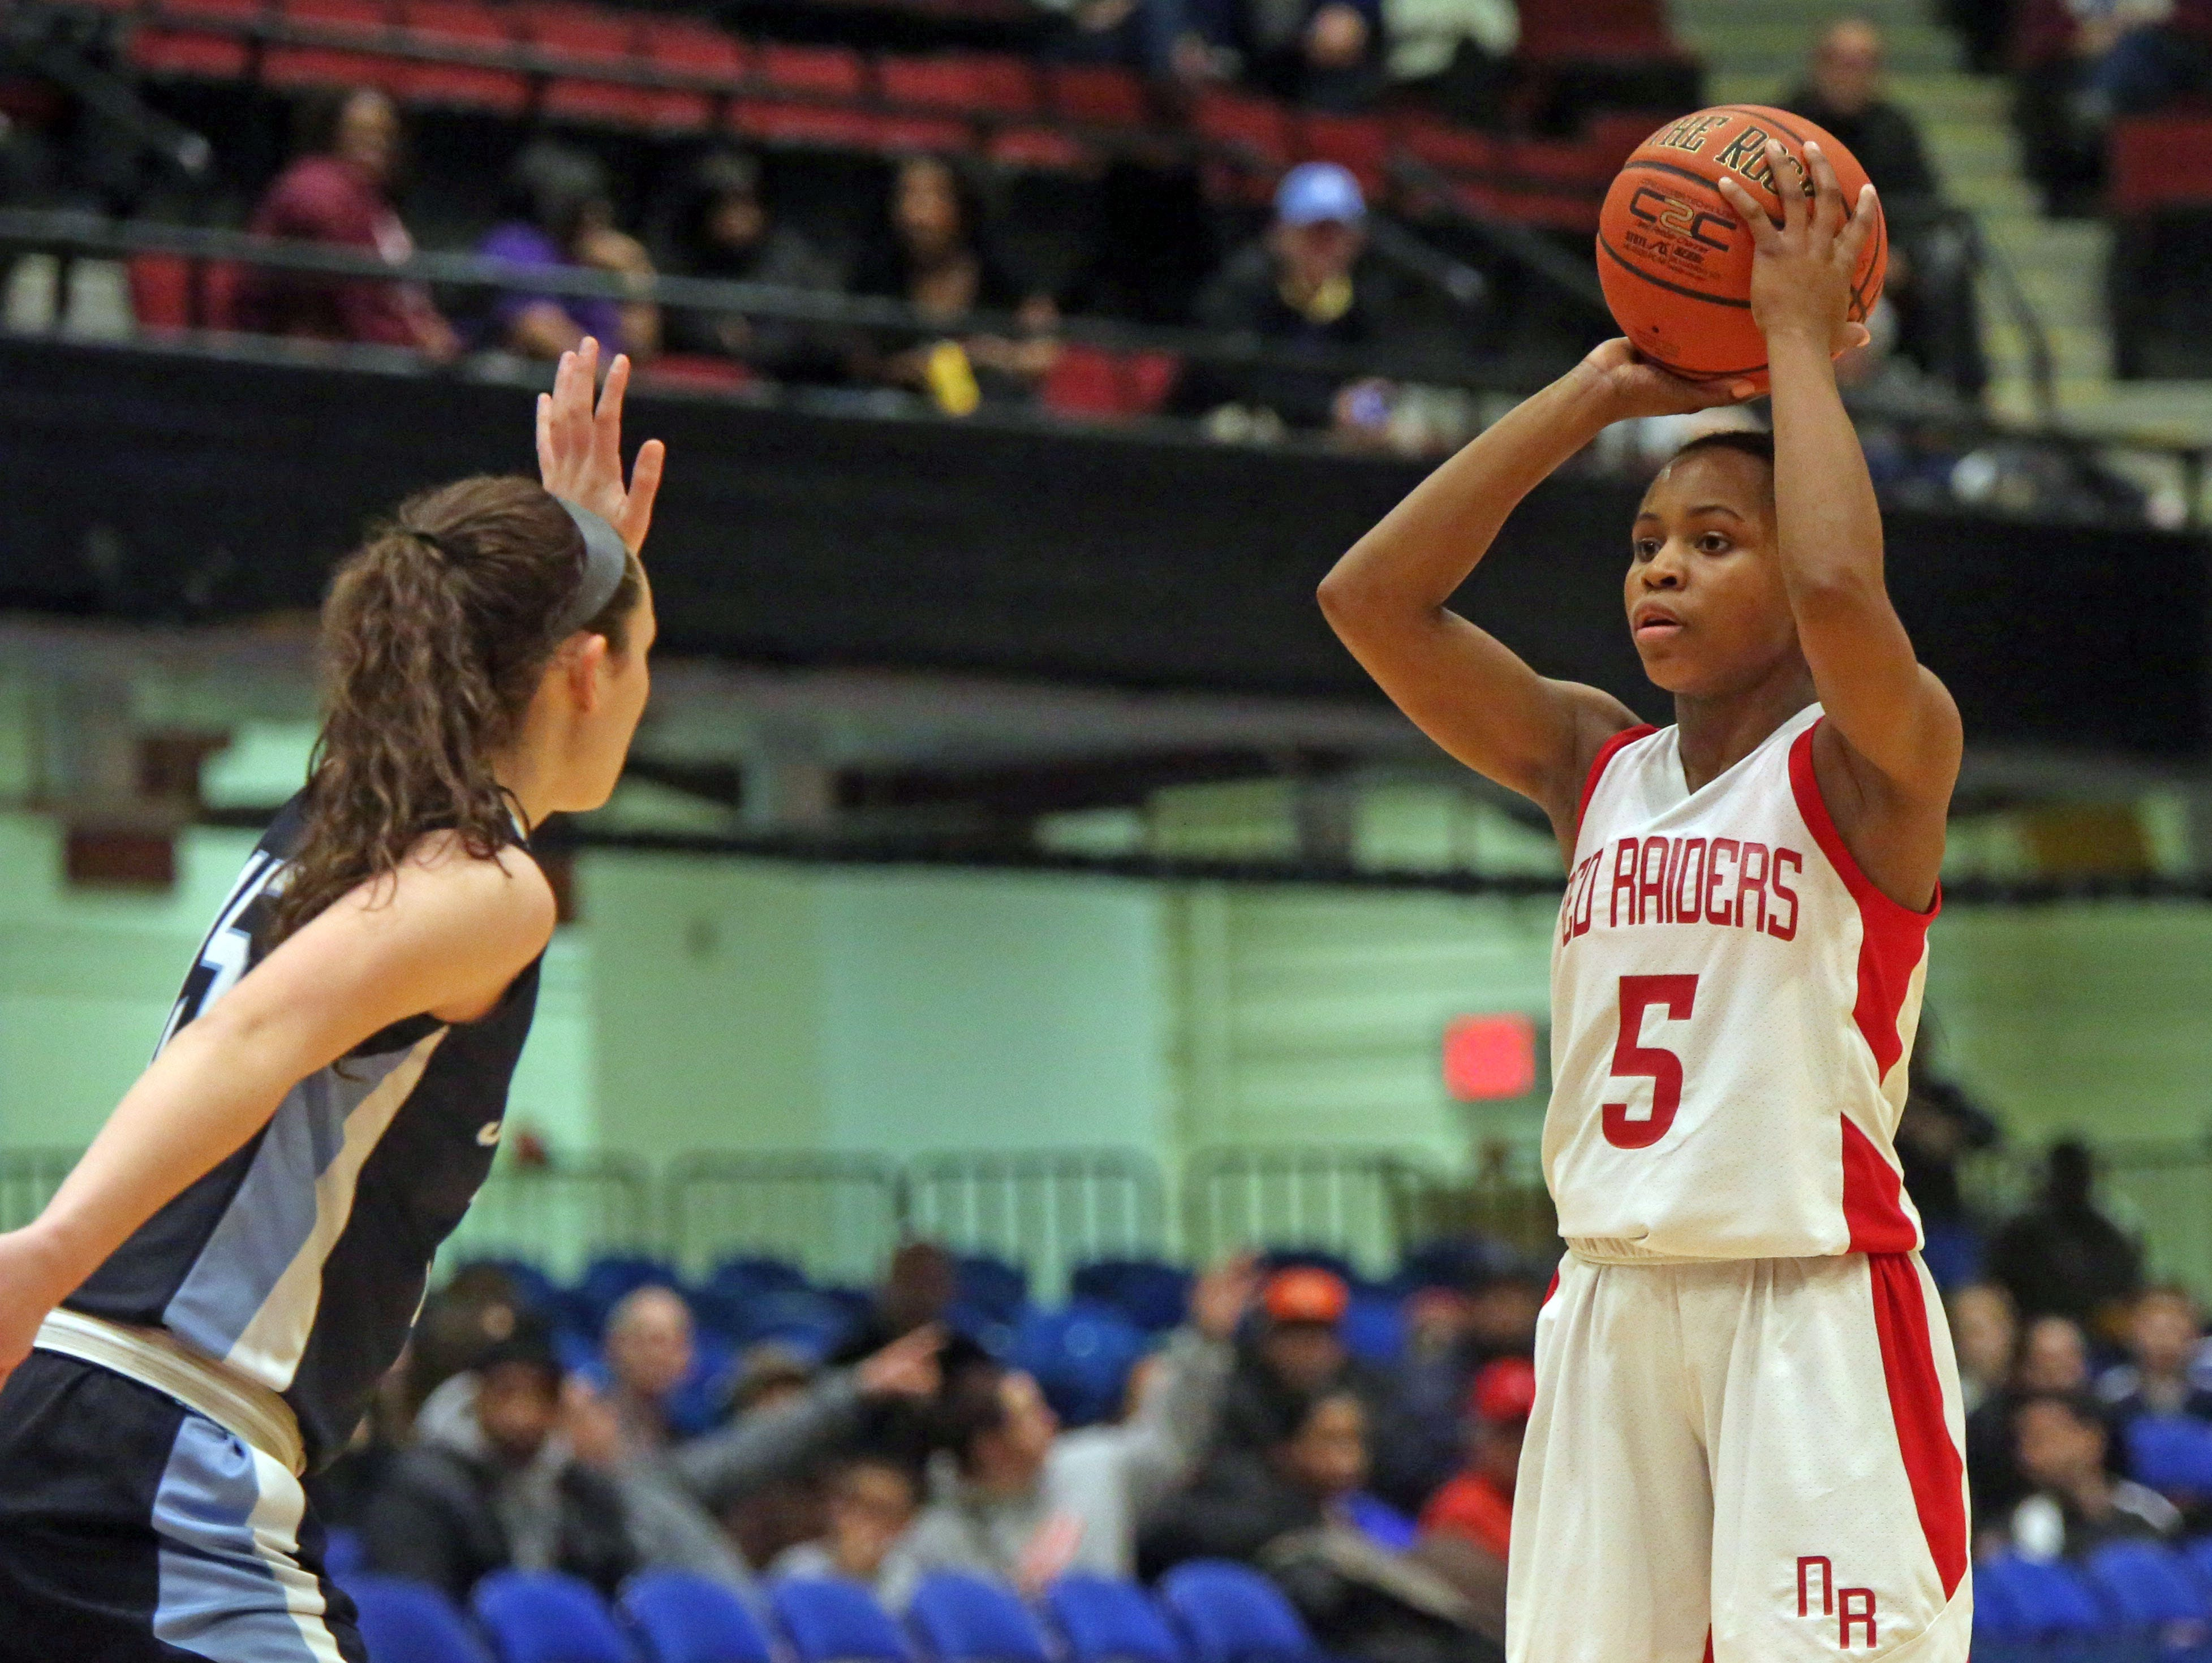 North Rockland's Gaby Cajou (5) in game action of Class AA Section 1 girls basketball semifinals at the County Center in White Plains Feb. 25, 2016. North Rockland defeats John Jay East Fishkill 56-45 .